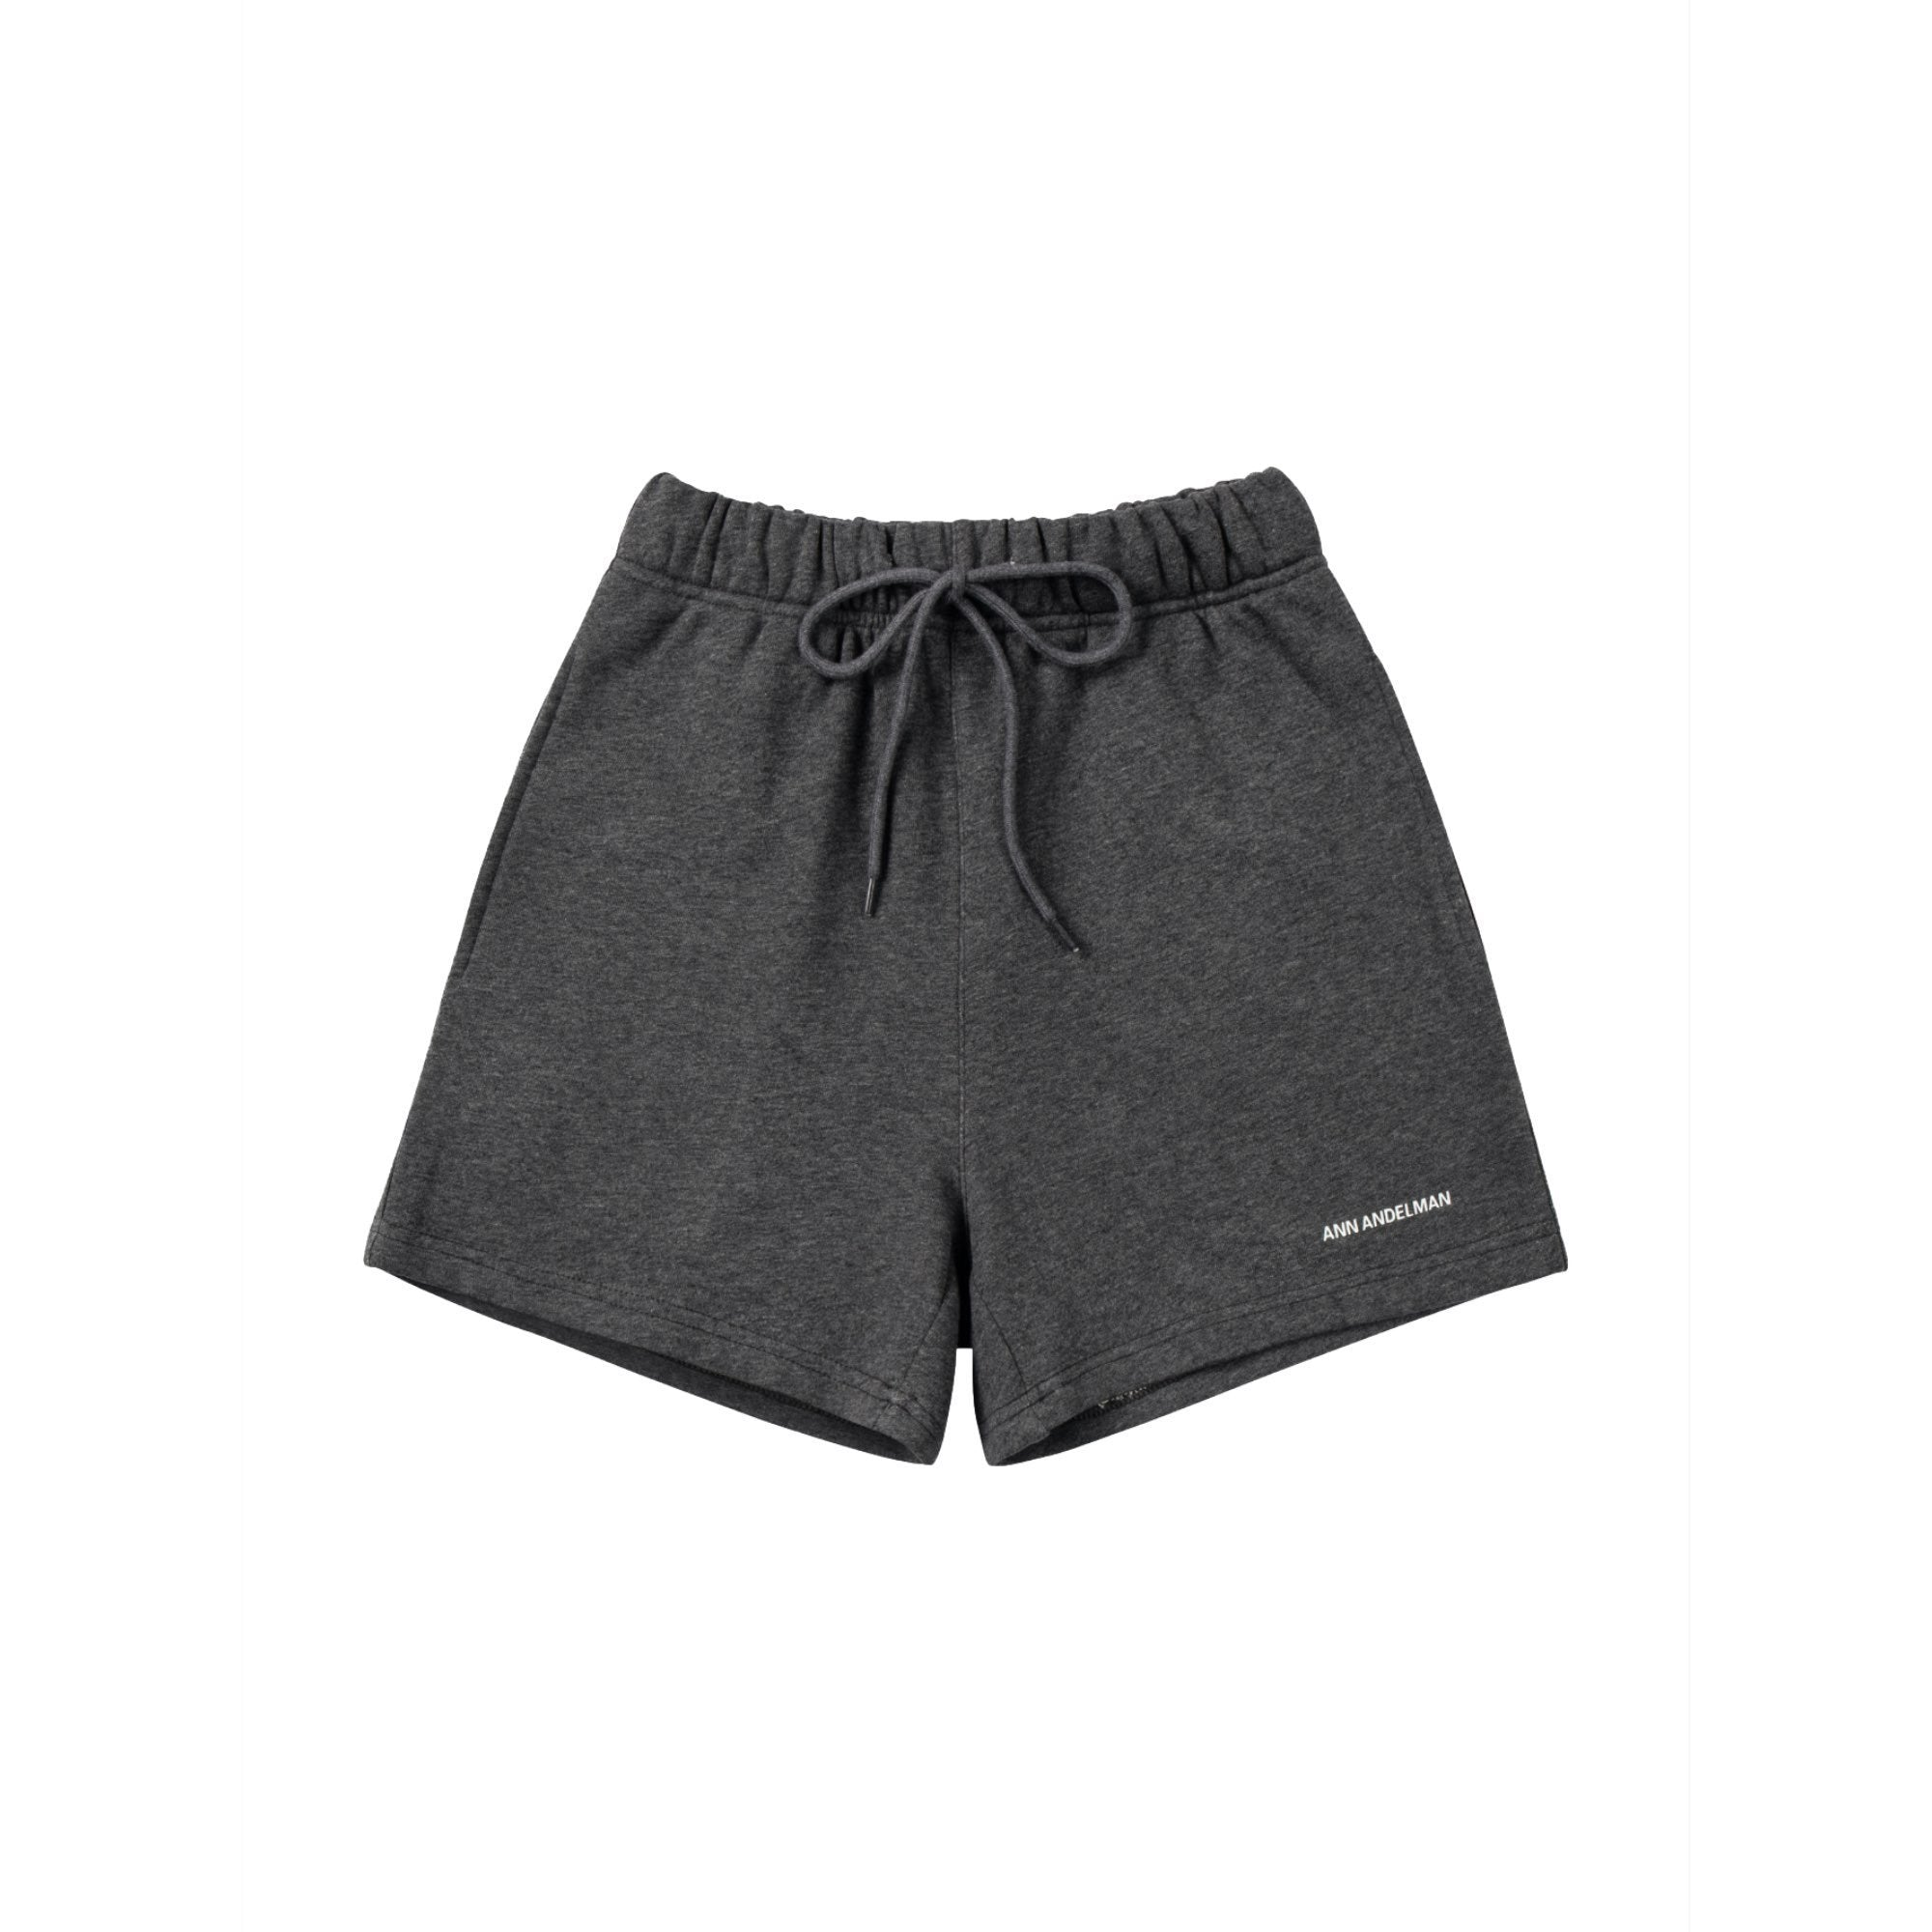 ANN ANDELMAN Grey Small Logo Shorts | MADA IN CHINA